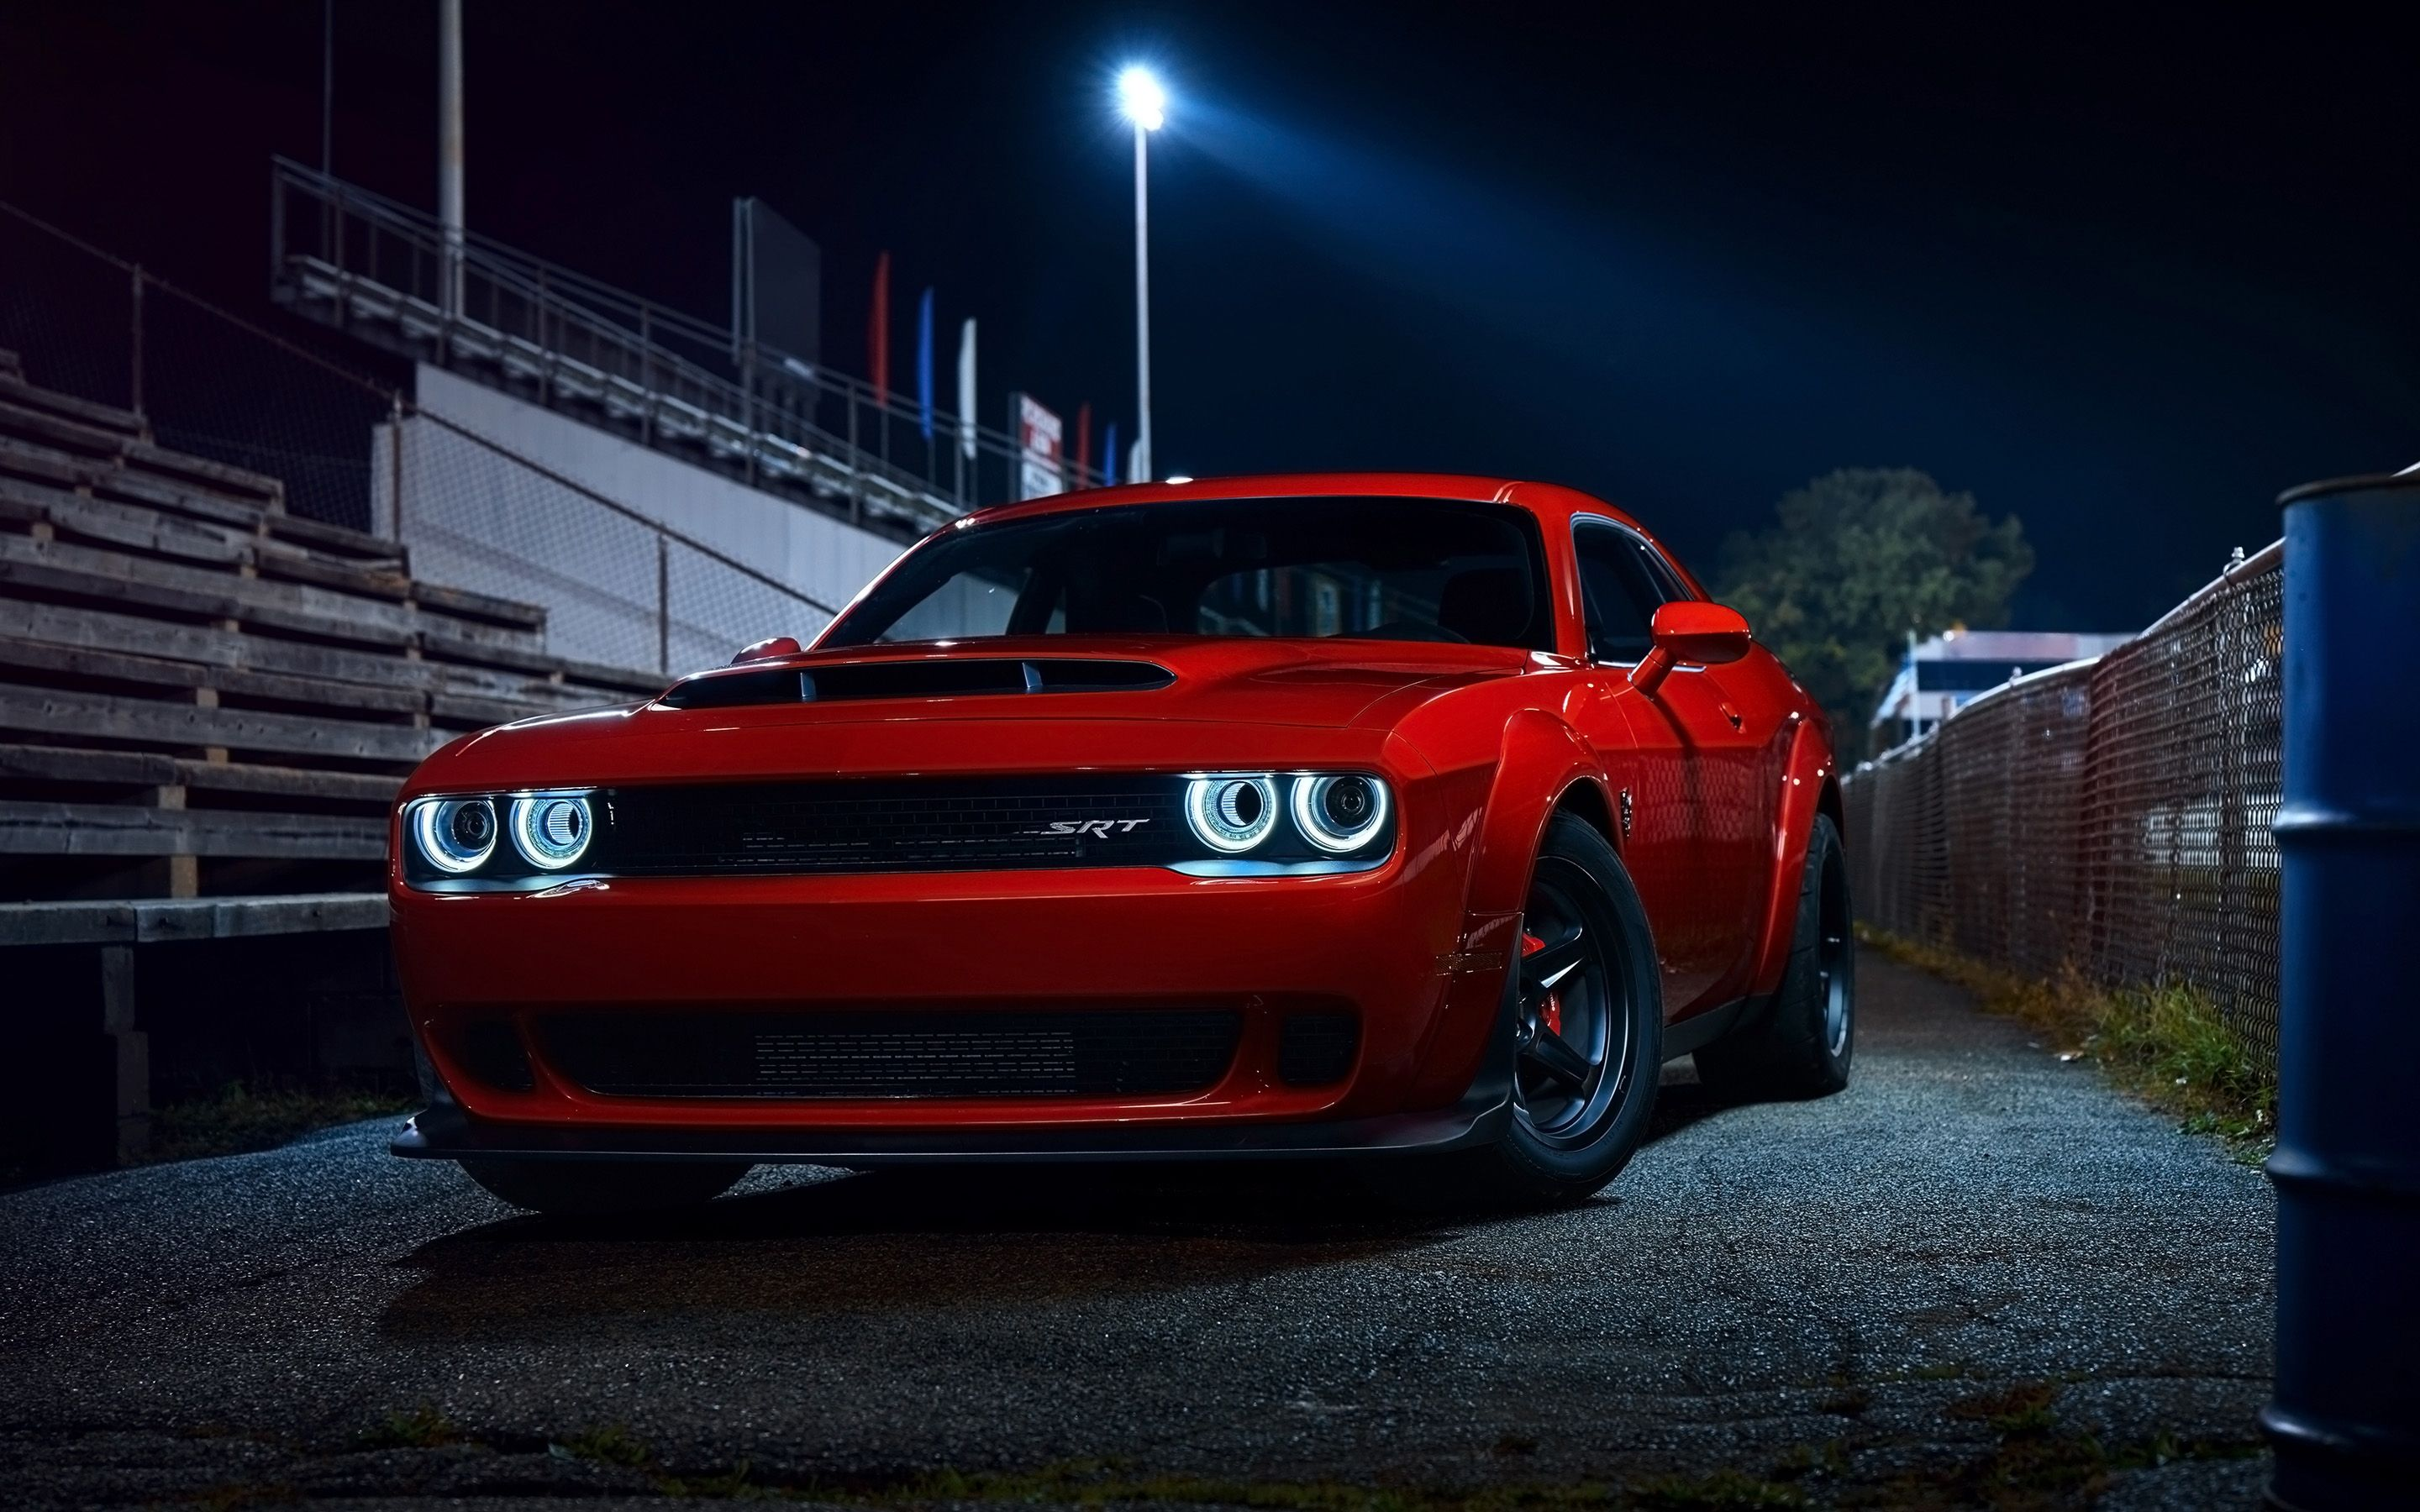 Red Challenger Wallpapers Top Free Red Challenger Backgrounds Wallpaperaccess